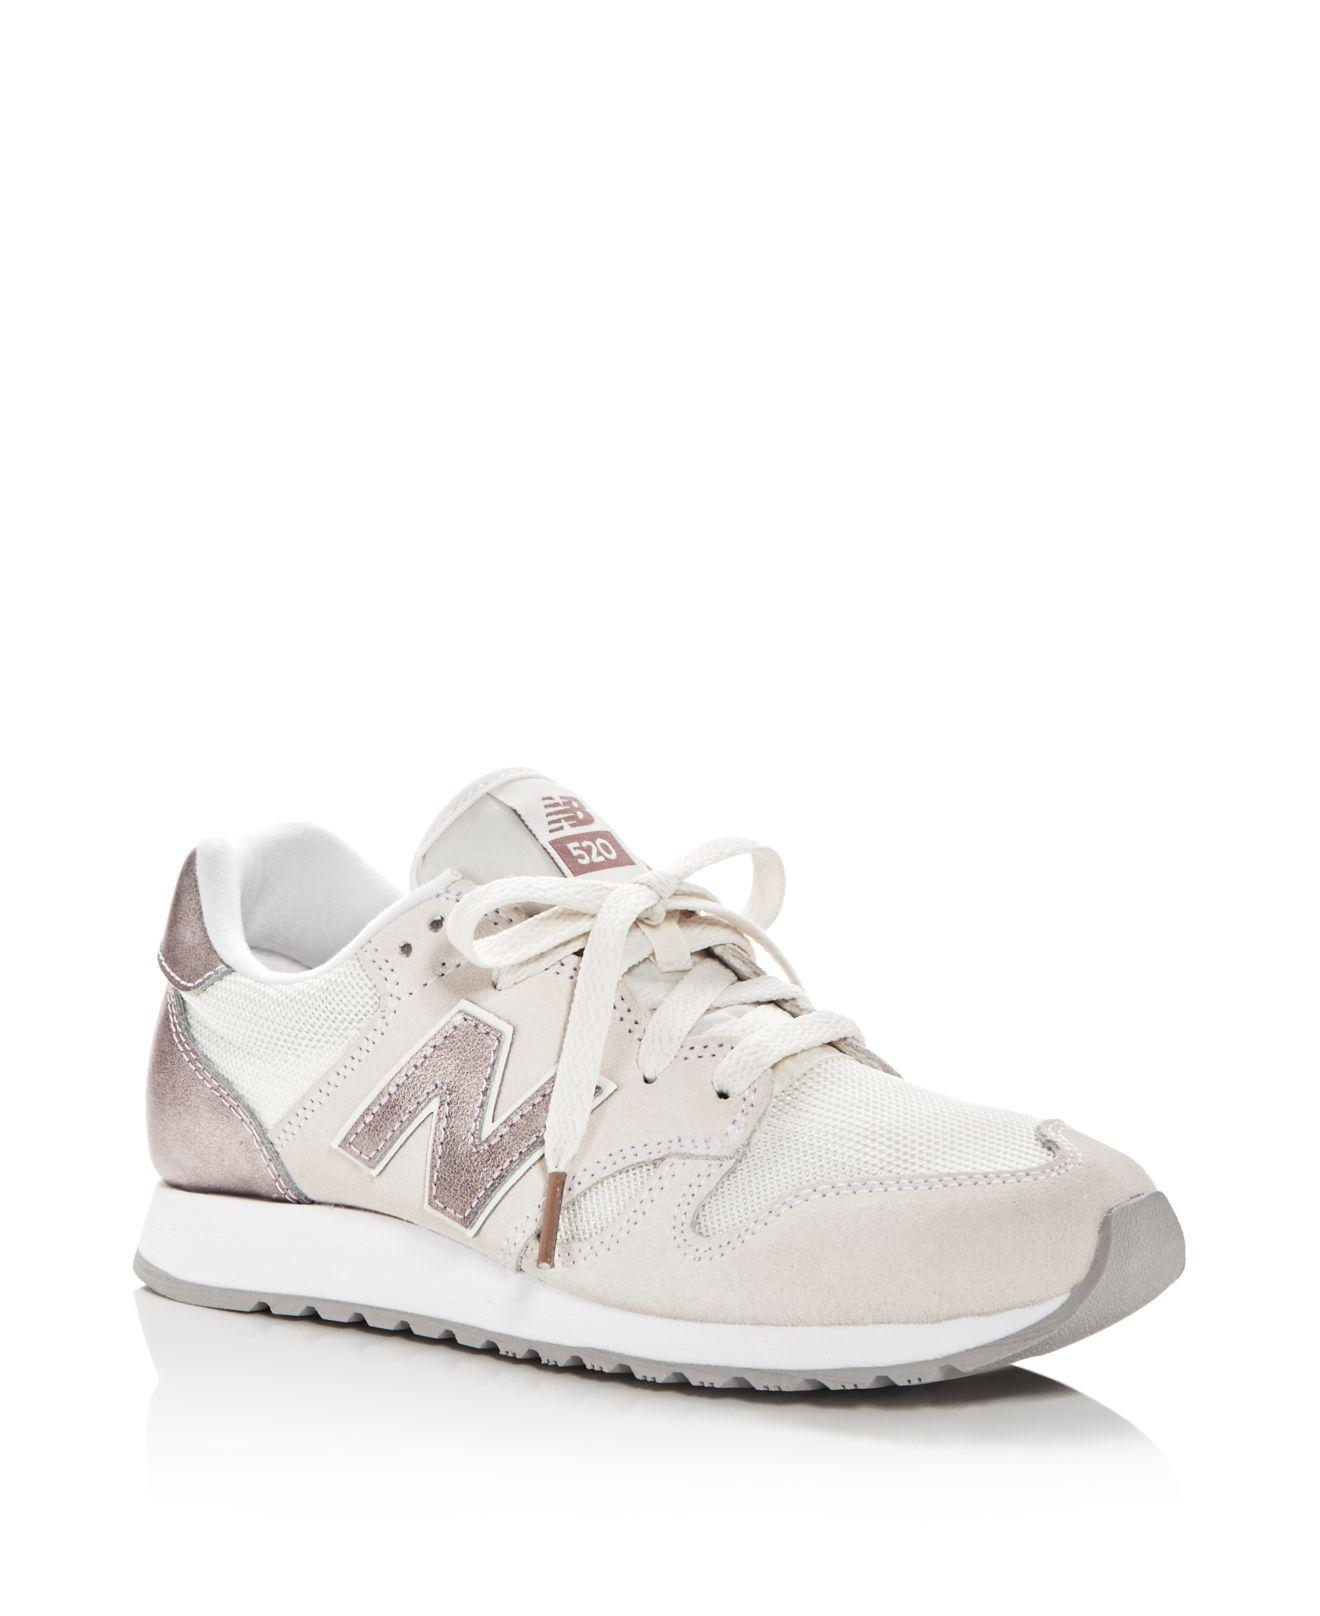 Lyst - New Balance Women s 520 Lace Up Sneakers in White 327256a3f7